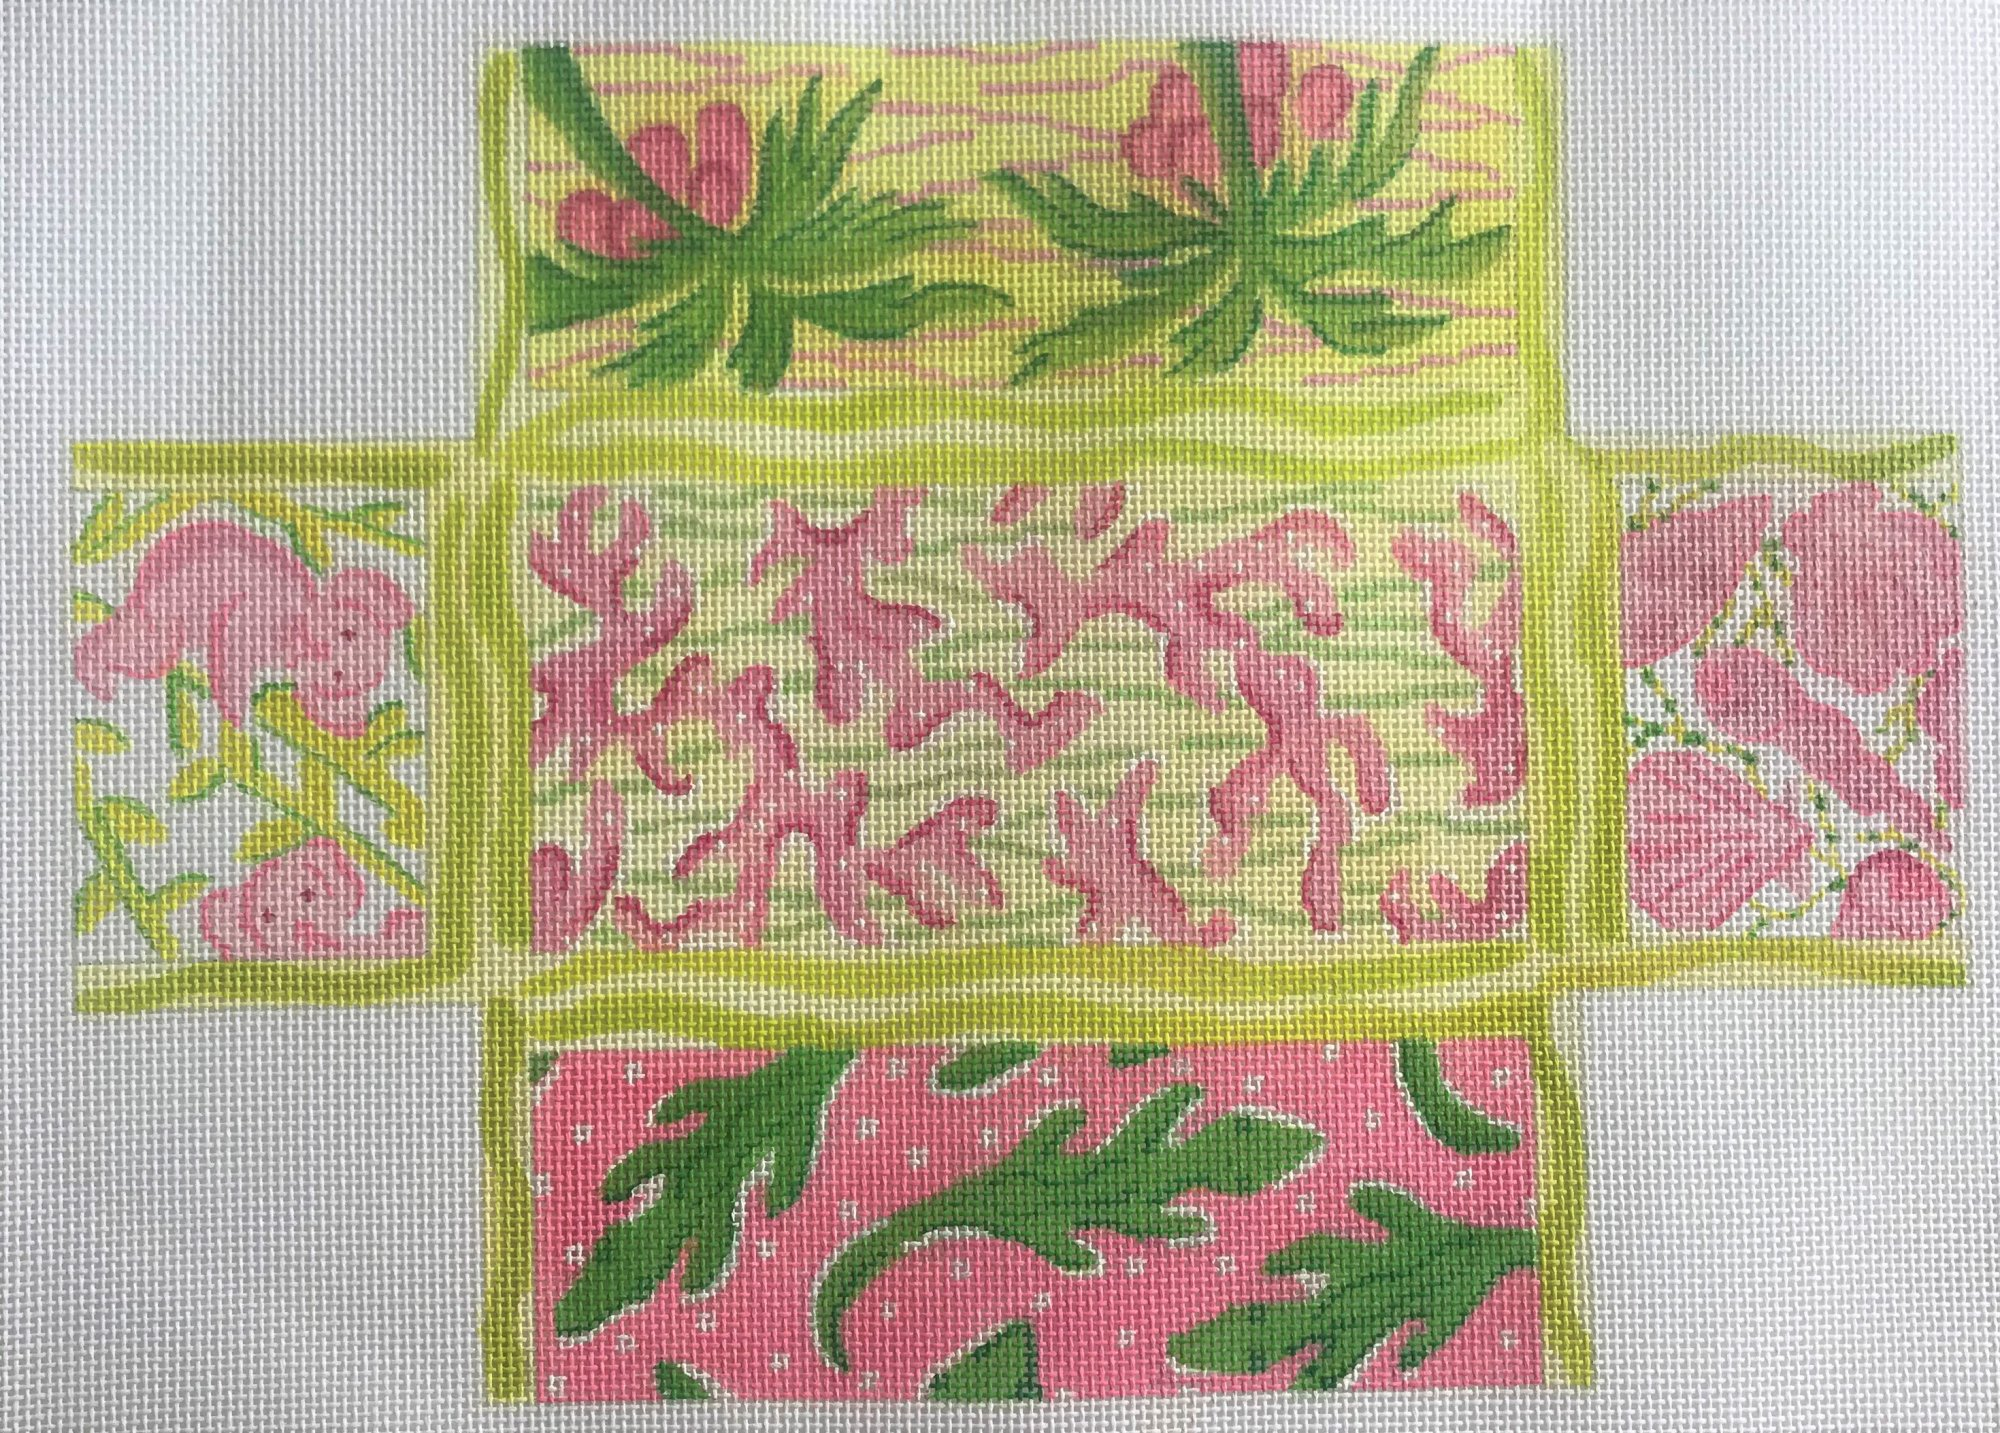 Brick - Lily inspired patchwork - pinks & greens